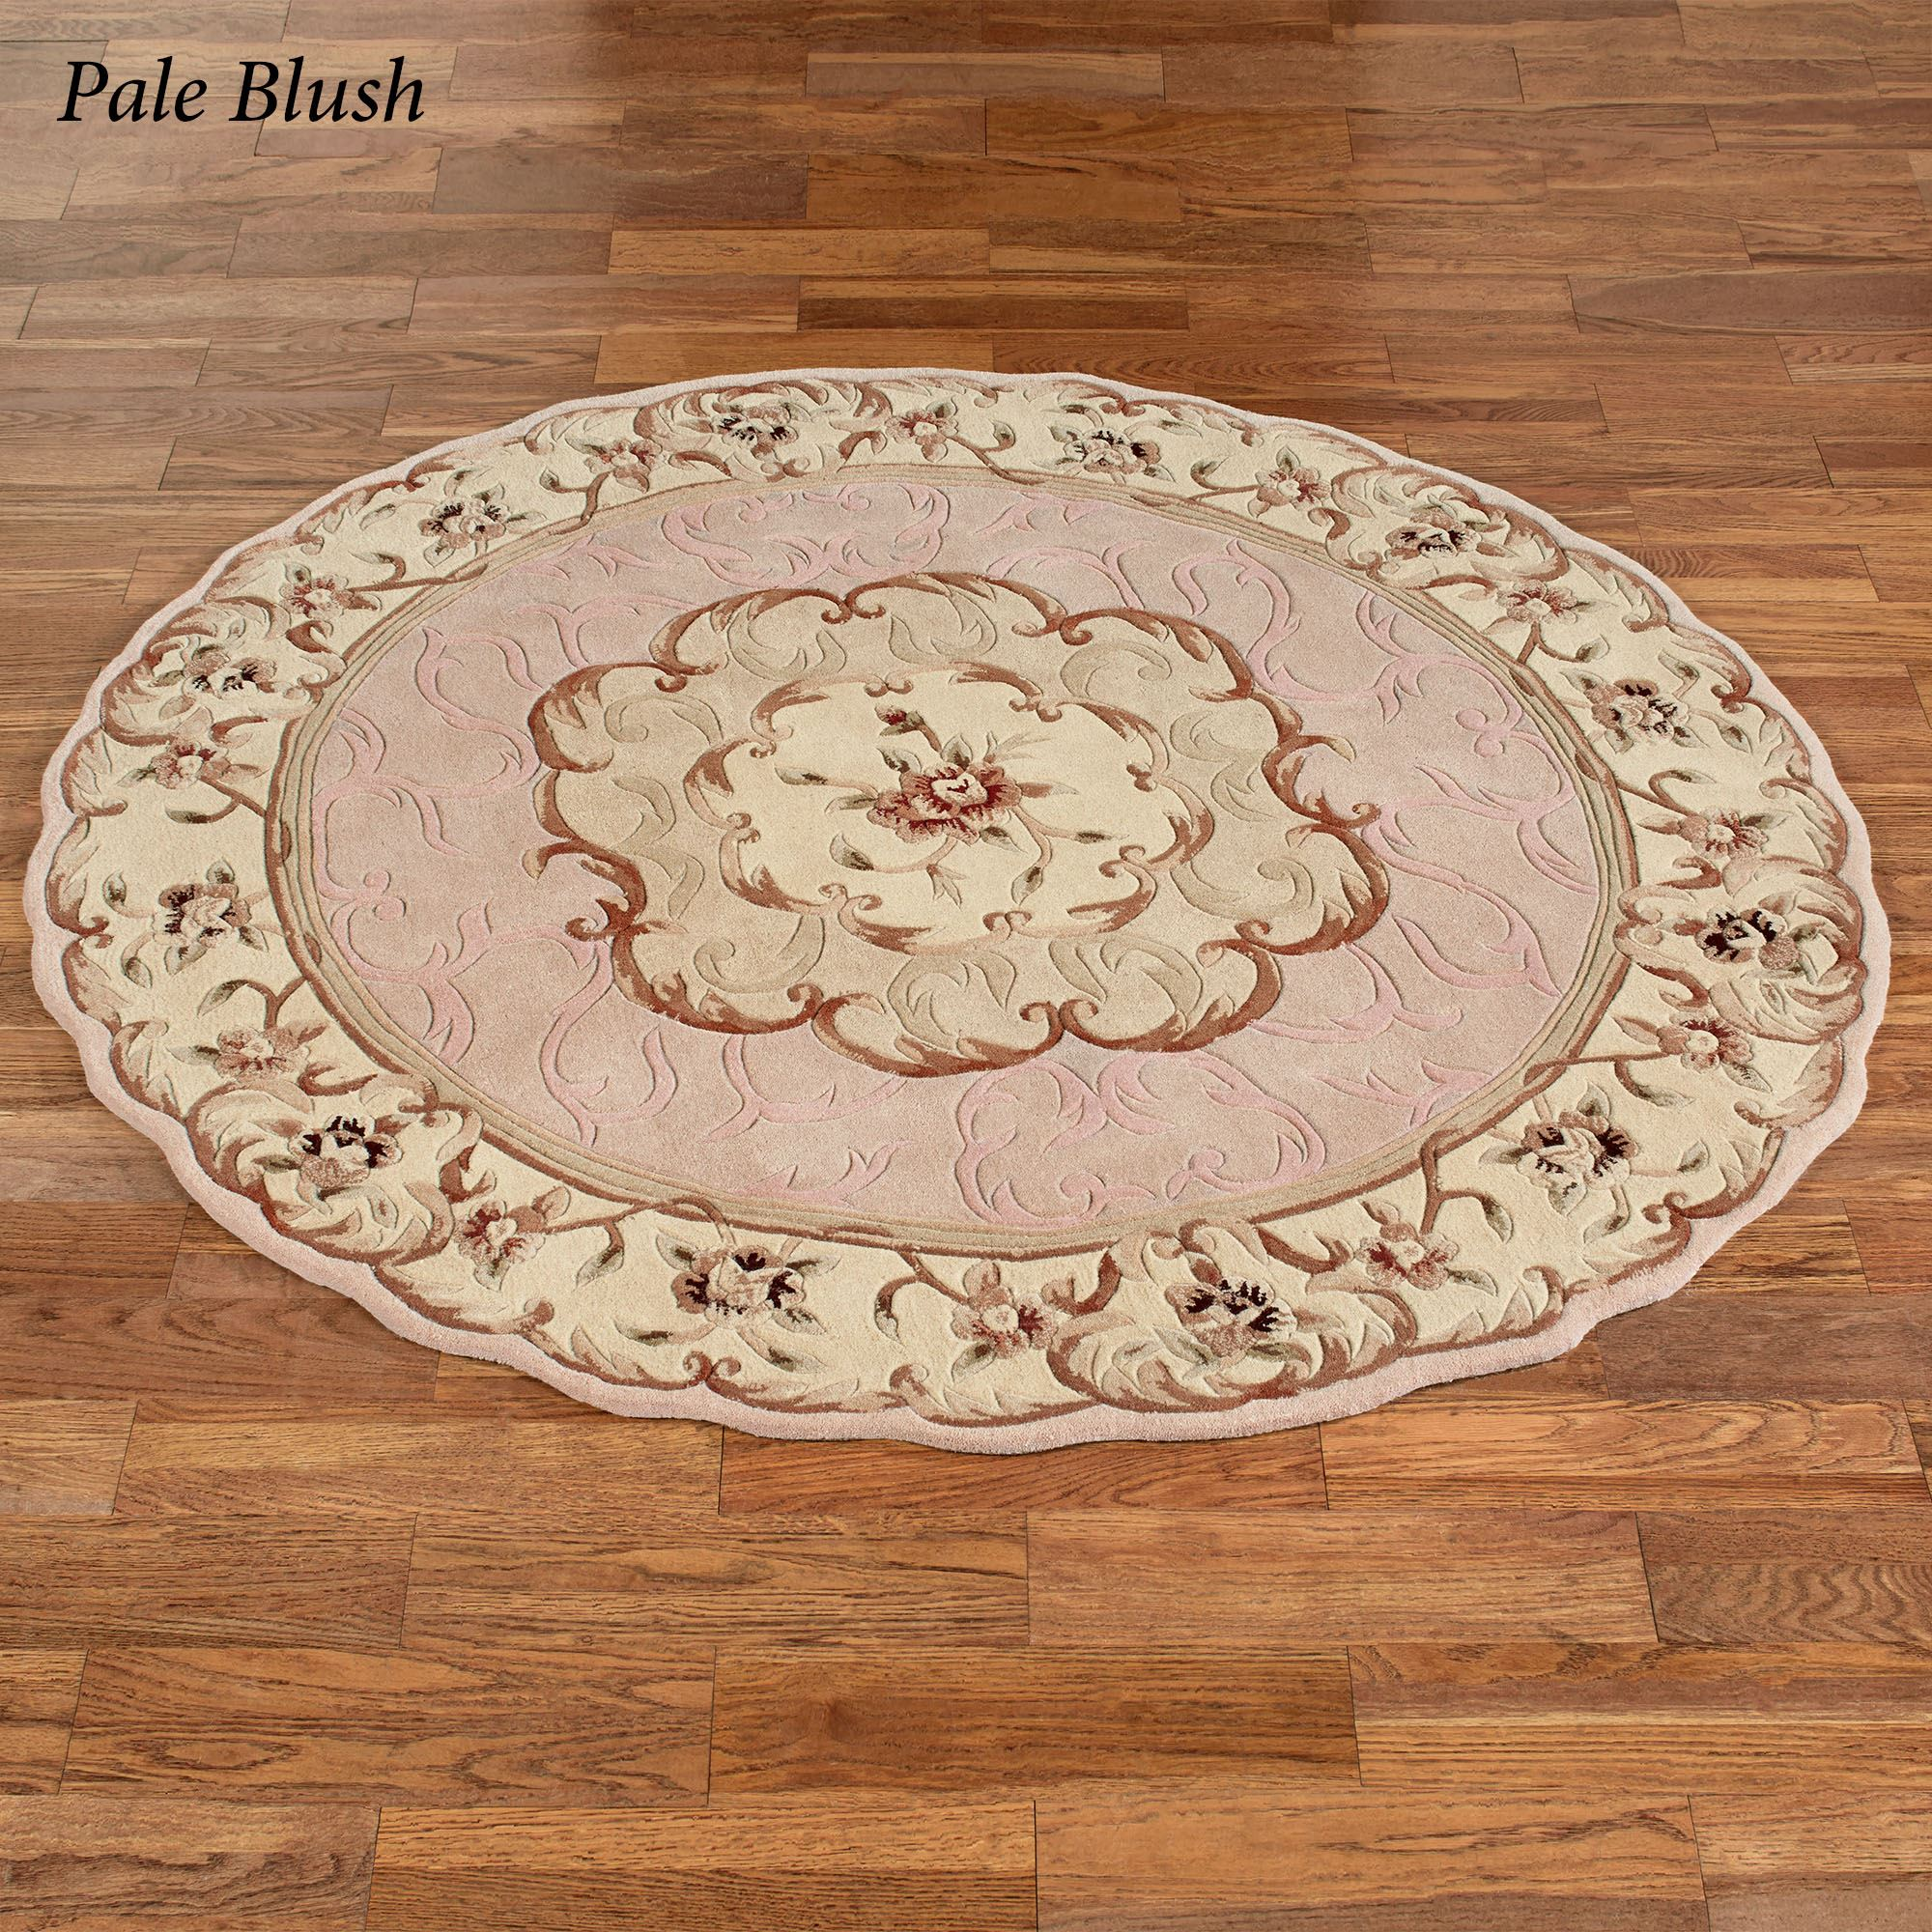 West Elm Round Rug Amazing Area Rug Best Round Area Rugs: Scalloped Round Rug